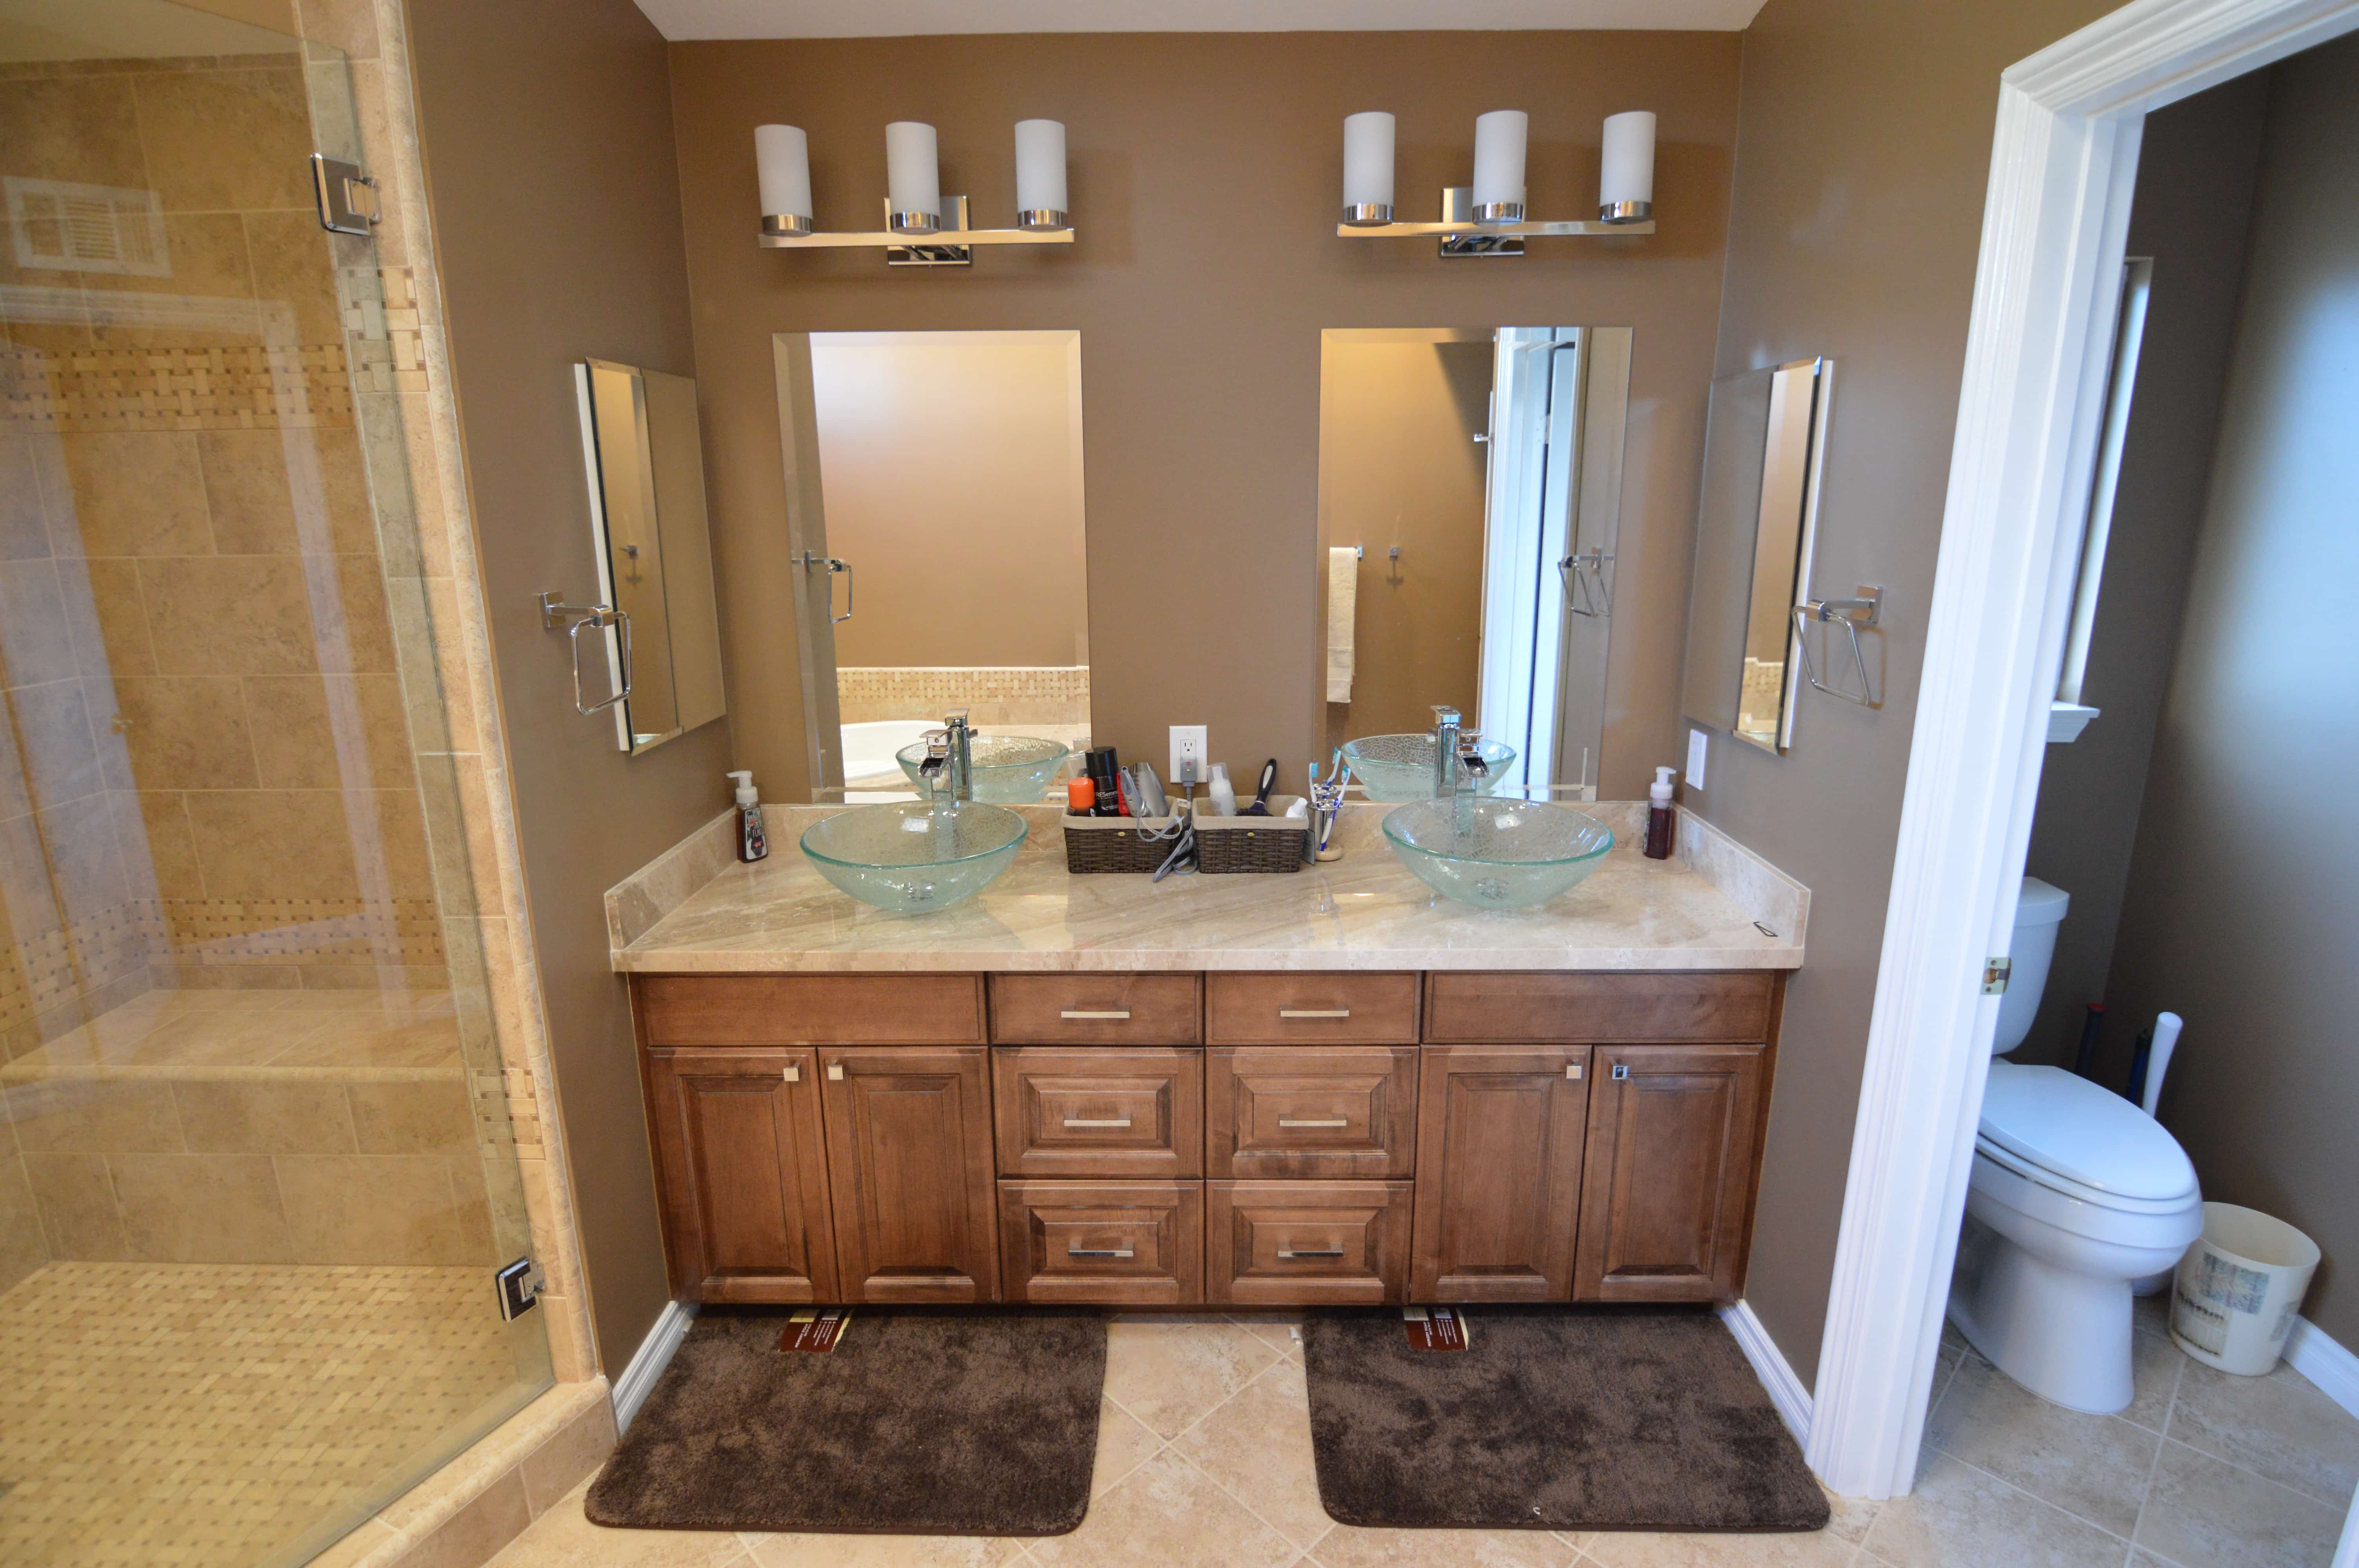 Brea Traditional Master Bathroom Remodel IV – Home Accents